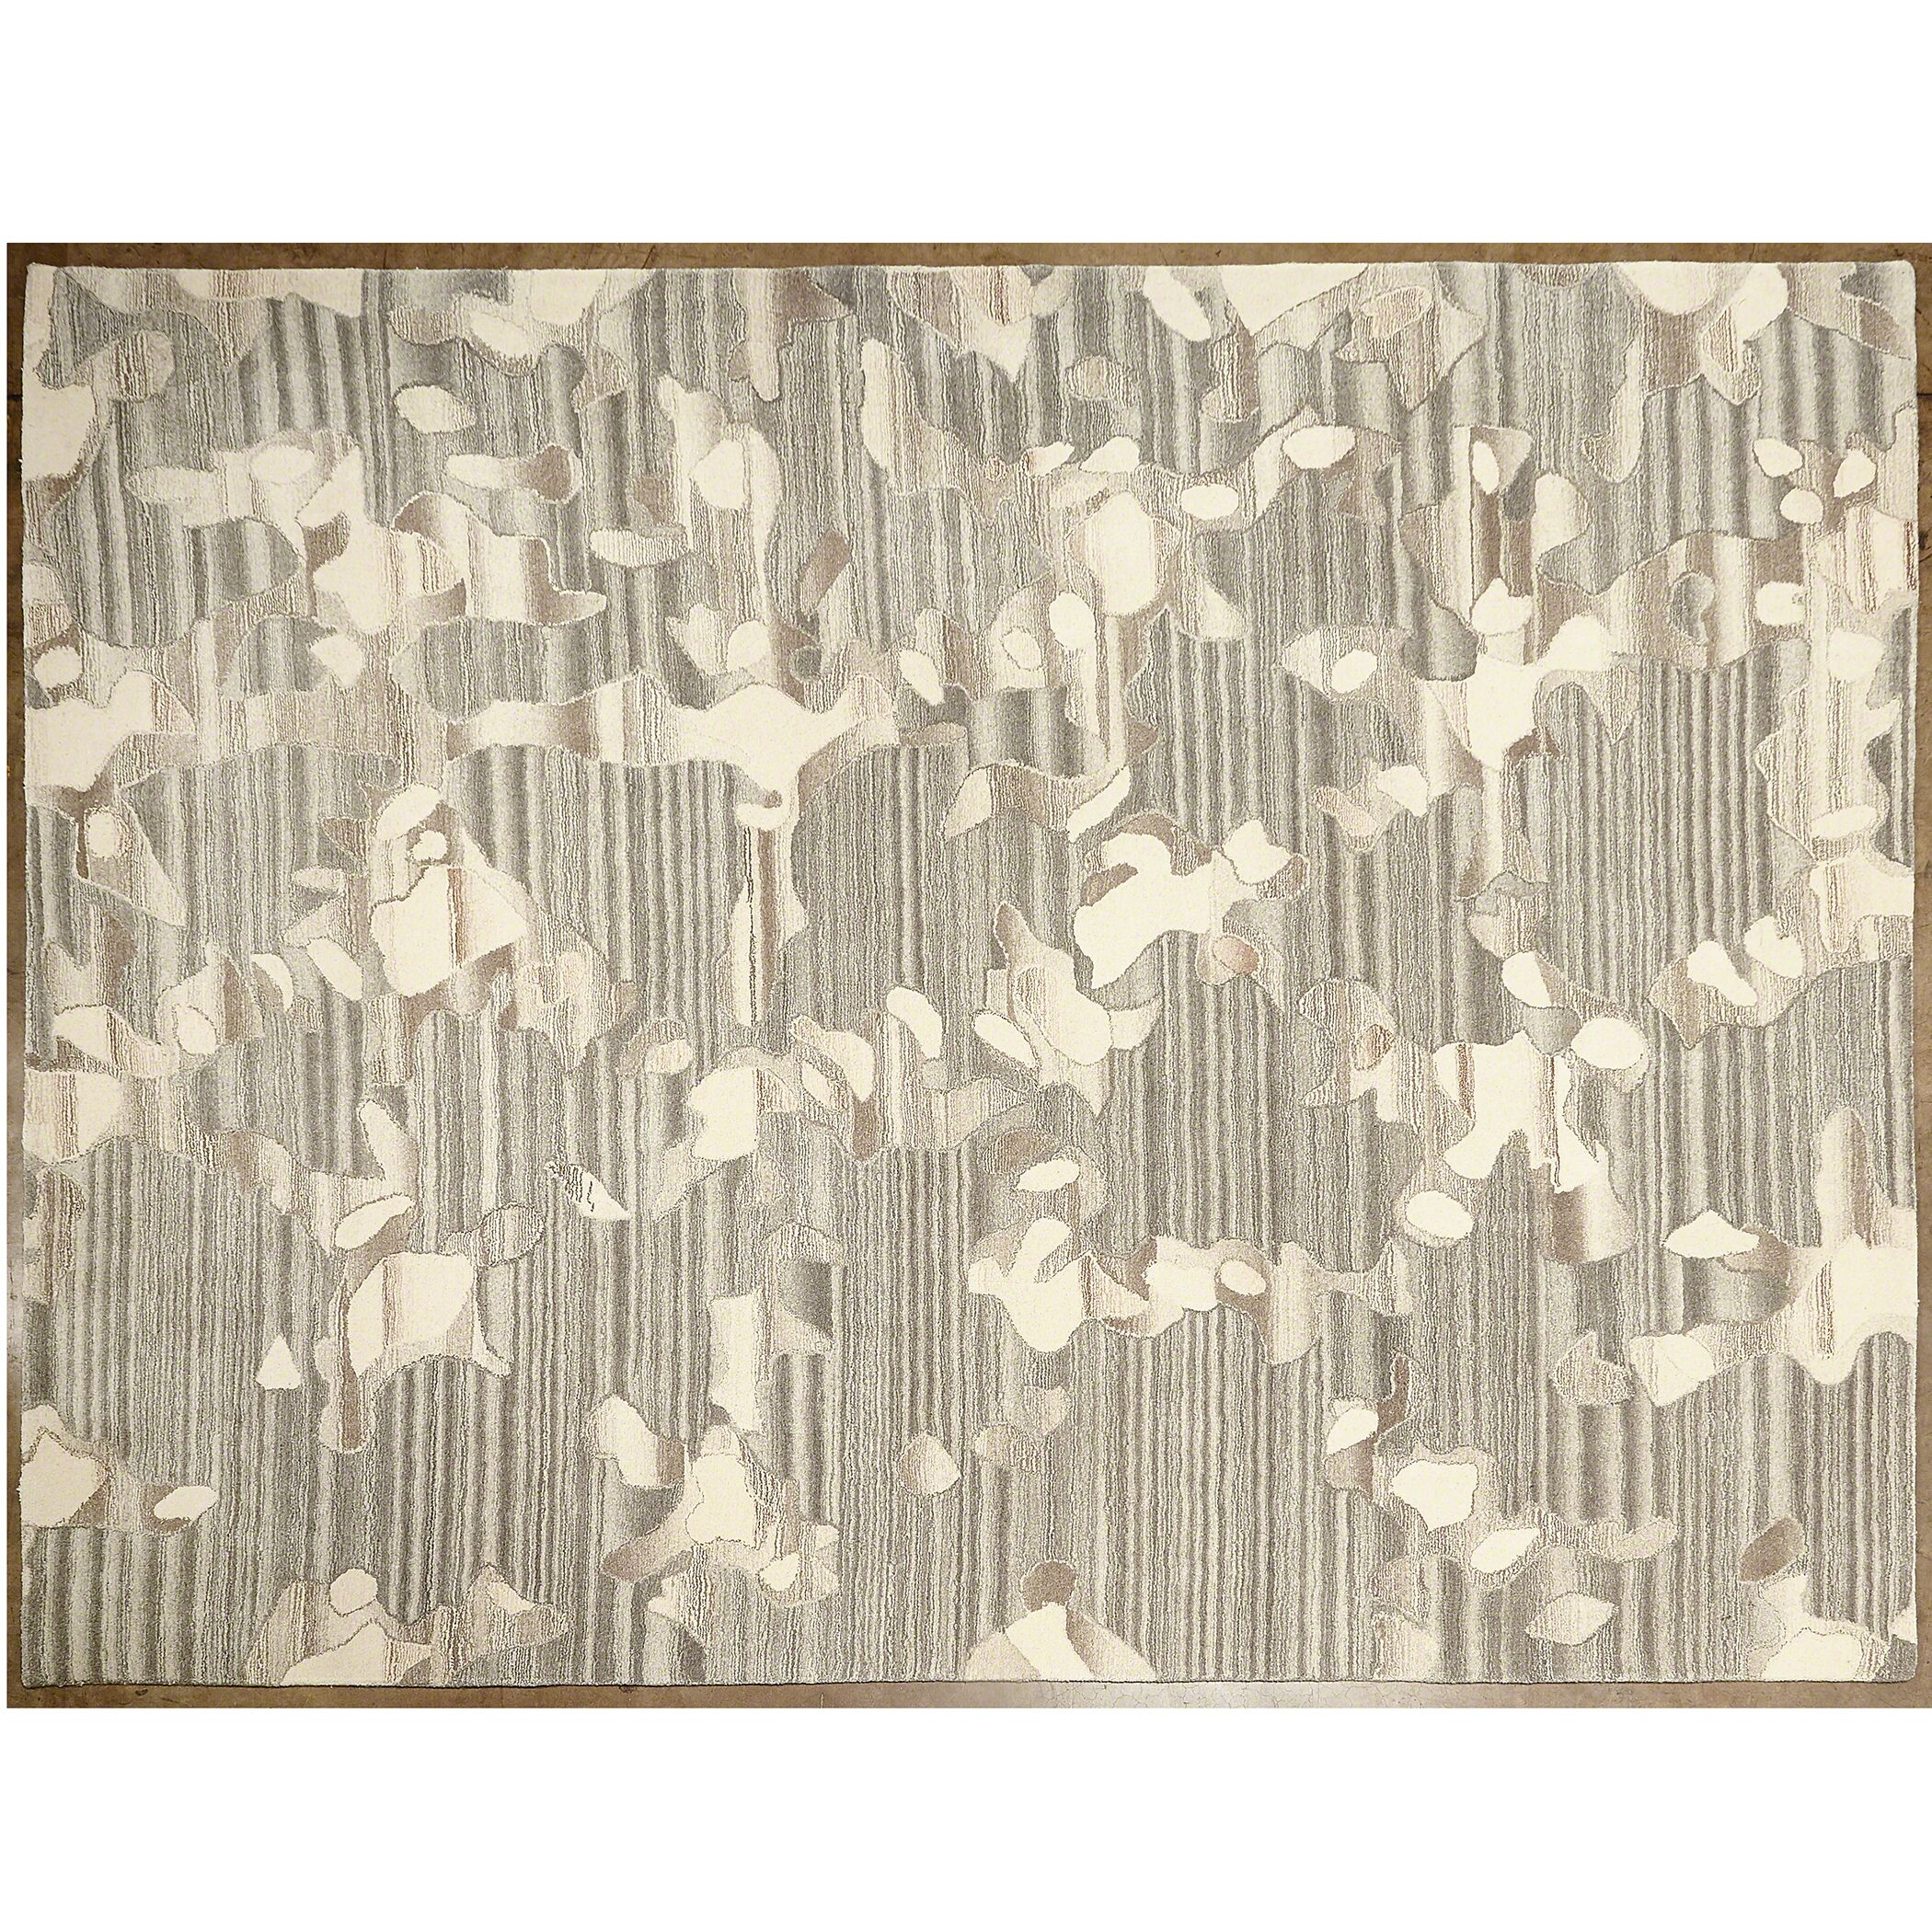 Anemone Gray/Ivory Area Rug Rug Size: Rectangle 9' x 12'